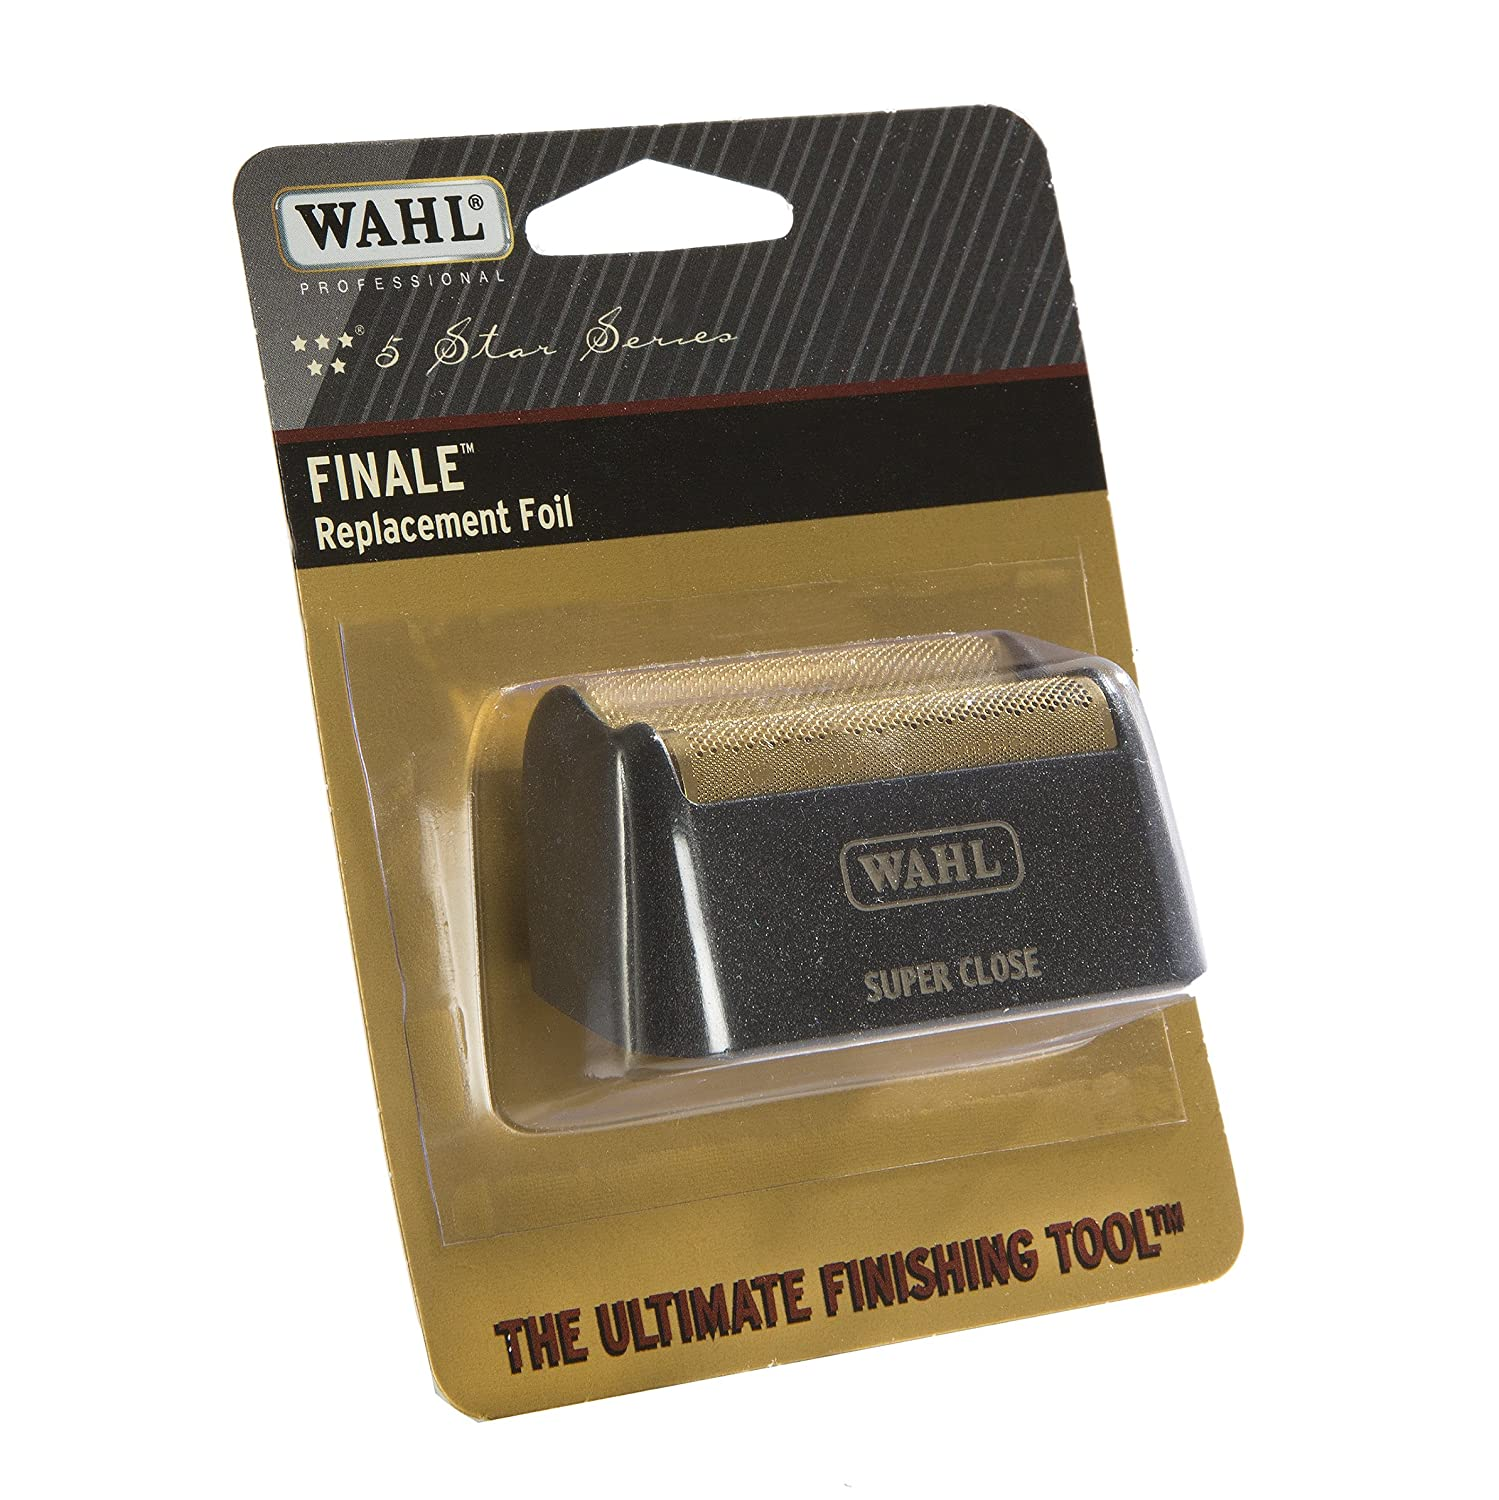 Wahl Professional 5-Star Series Finale Shave Replacement Foil #7043-100 – Hypo-Allergenic For Super Close Bump Free Shaving – Black 0043917101958